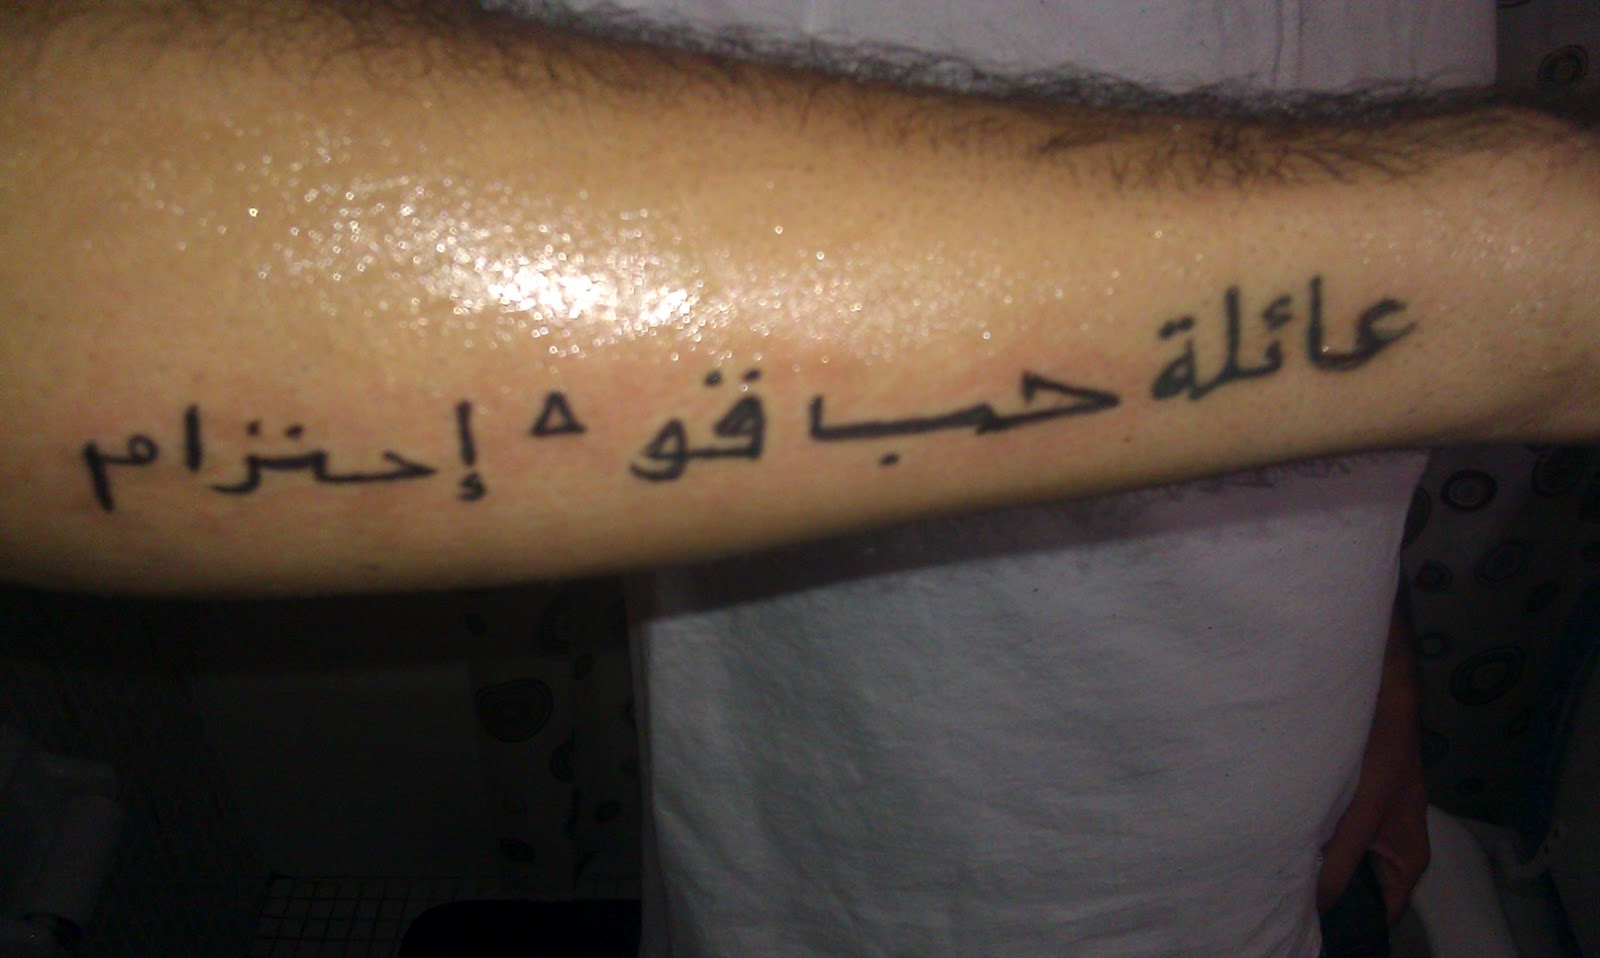 Arabic tattoos designs ideas and meaning tattoos for you arabic tattoos and meanings buycottarizona